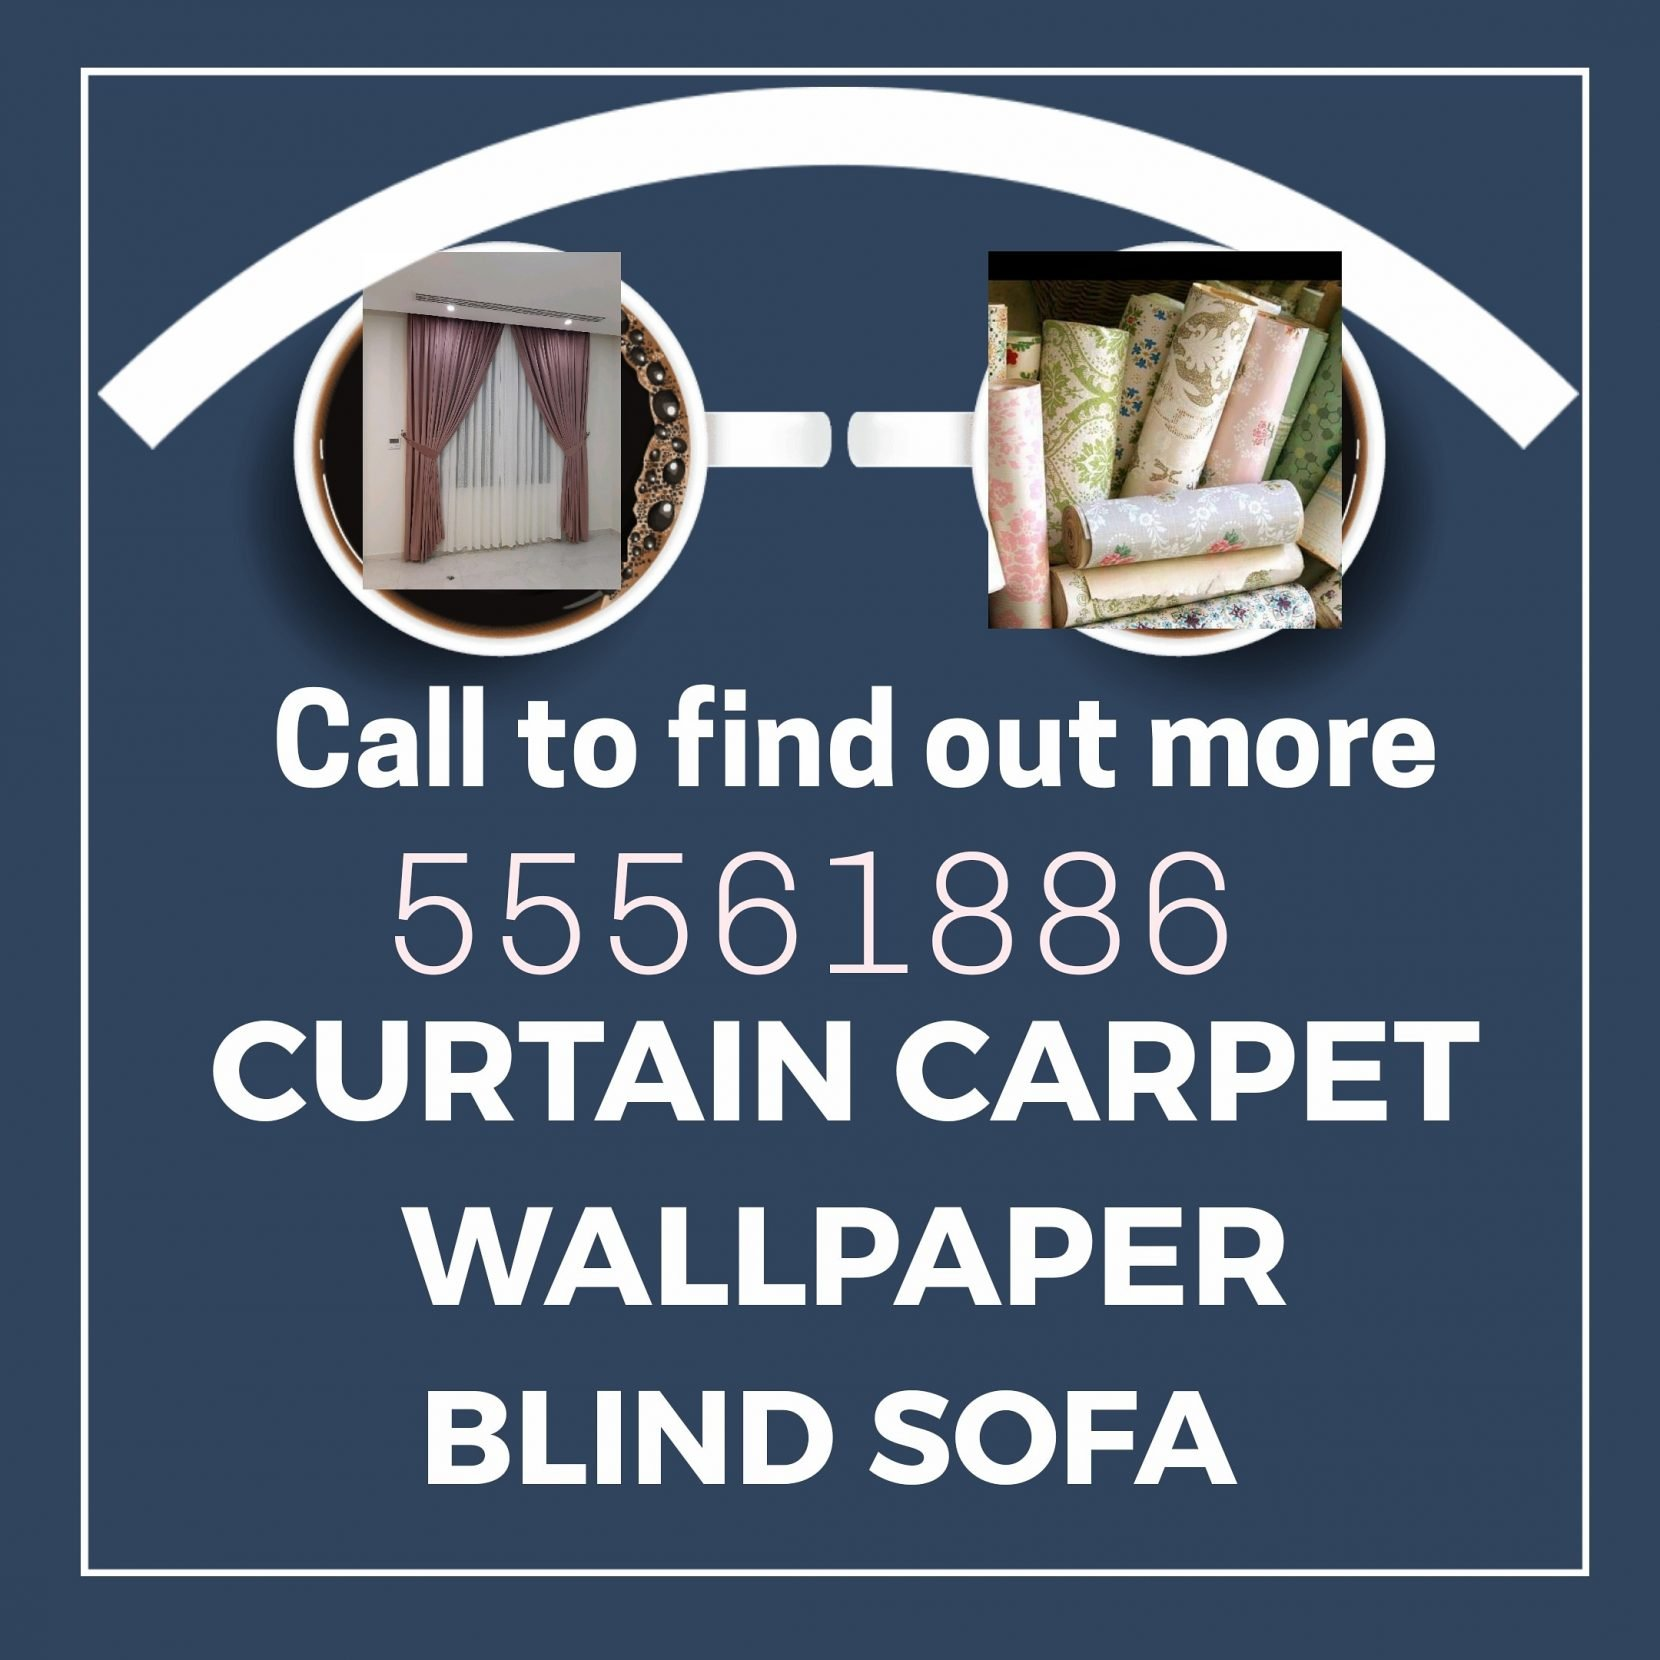 Curtain sofa wallpaper blind